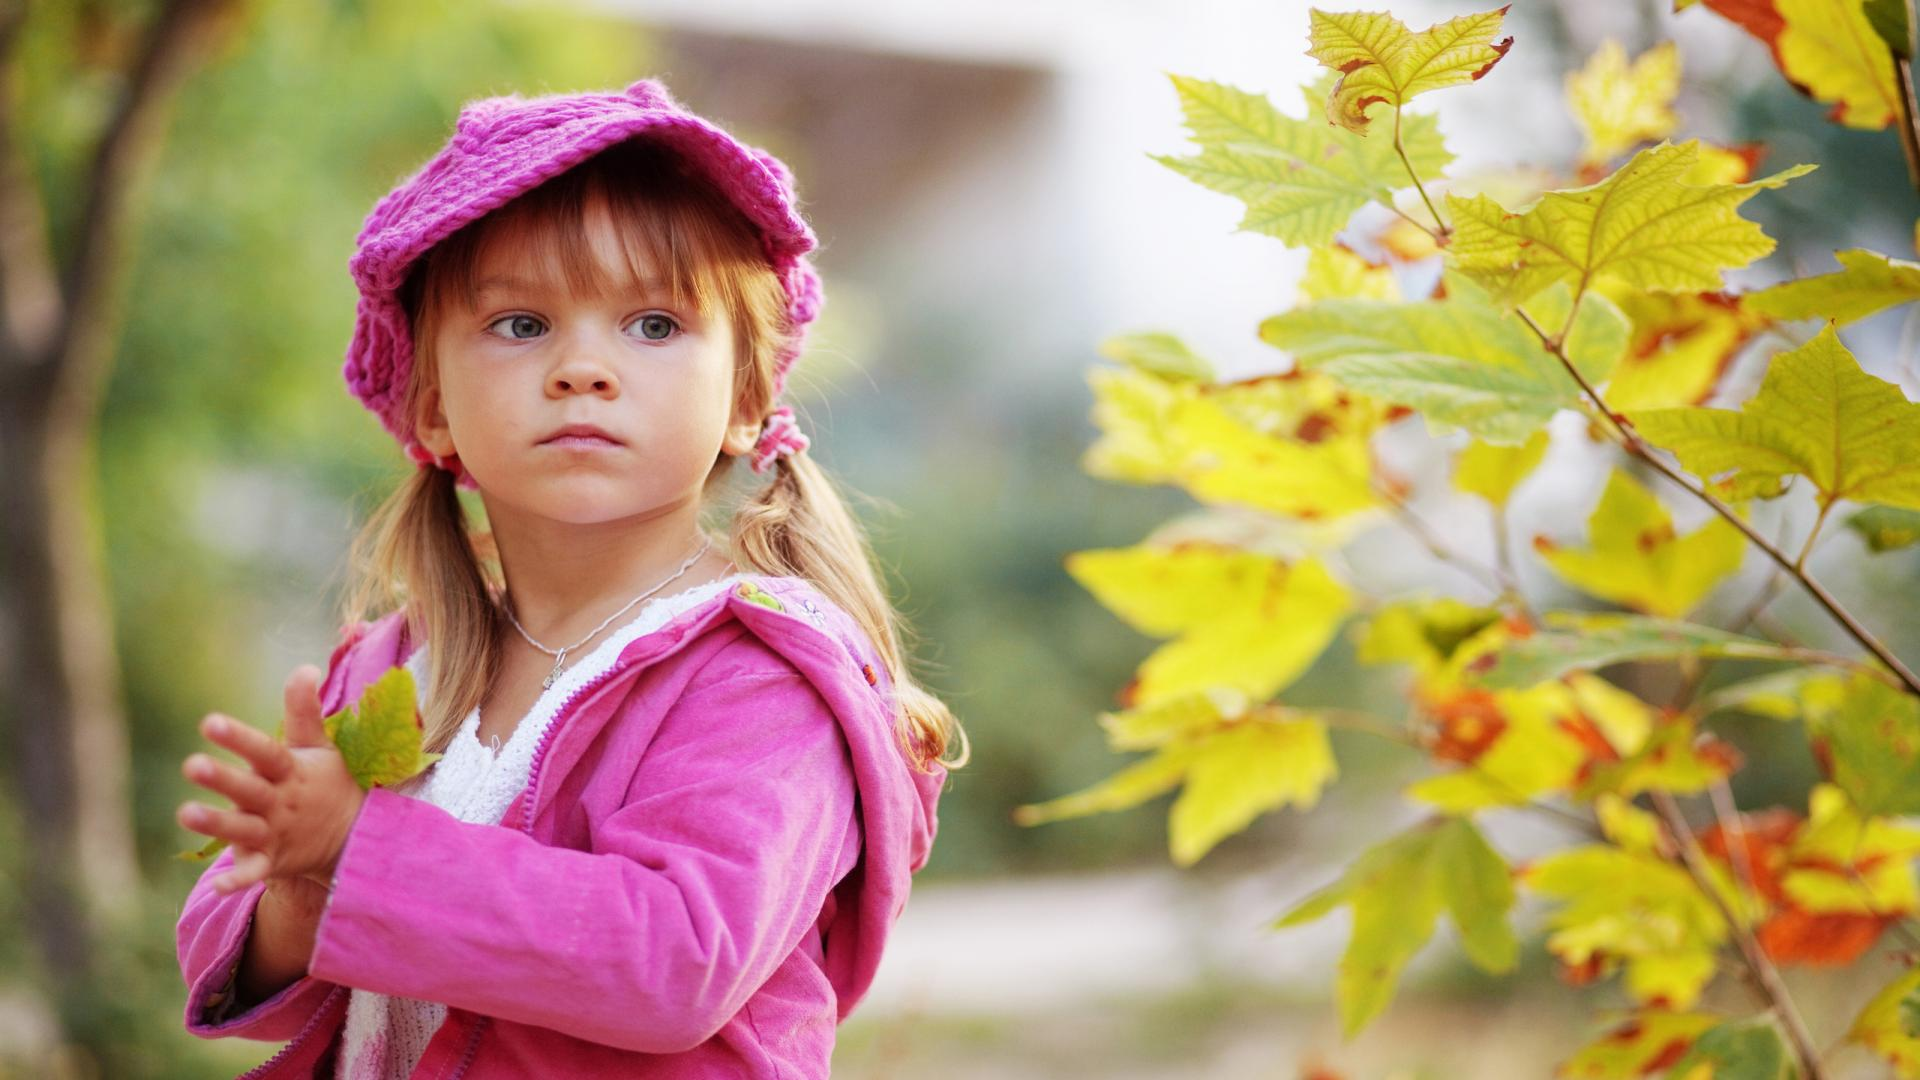 Baby Child In Autumn Hd Wallpaper